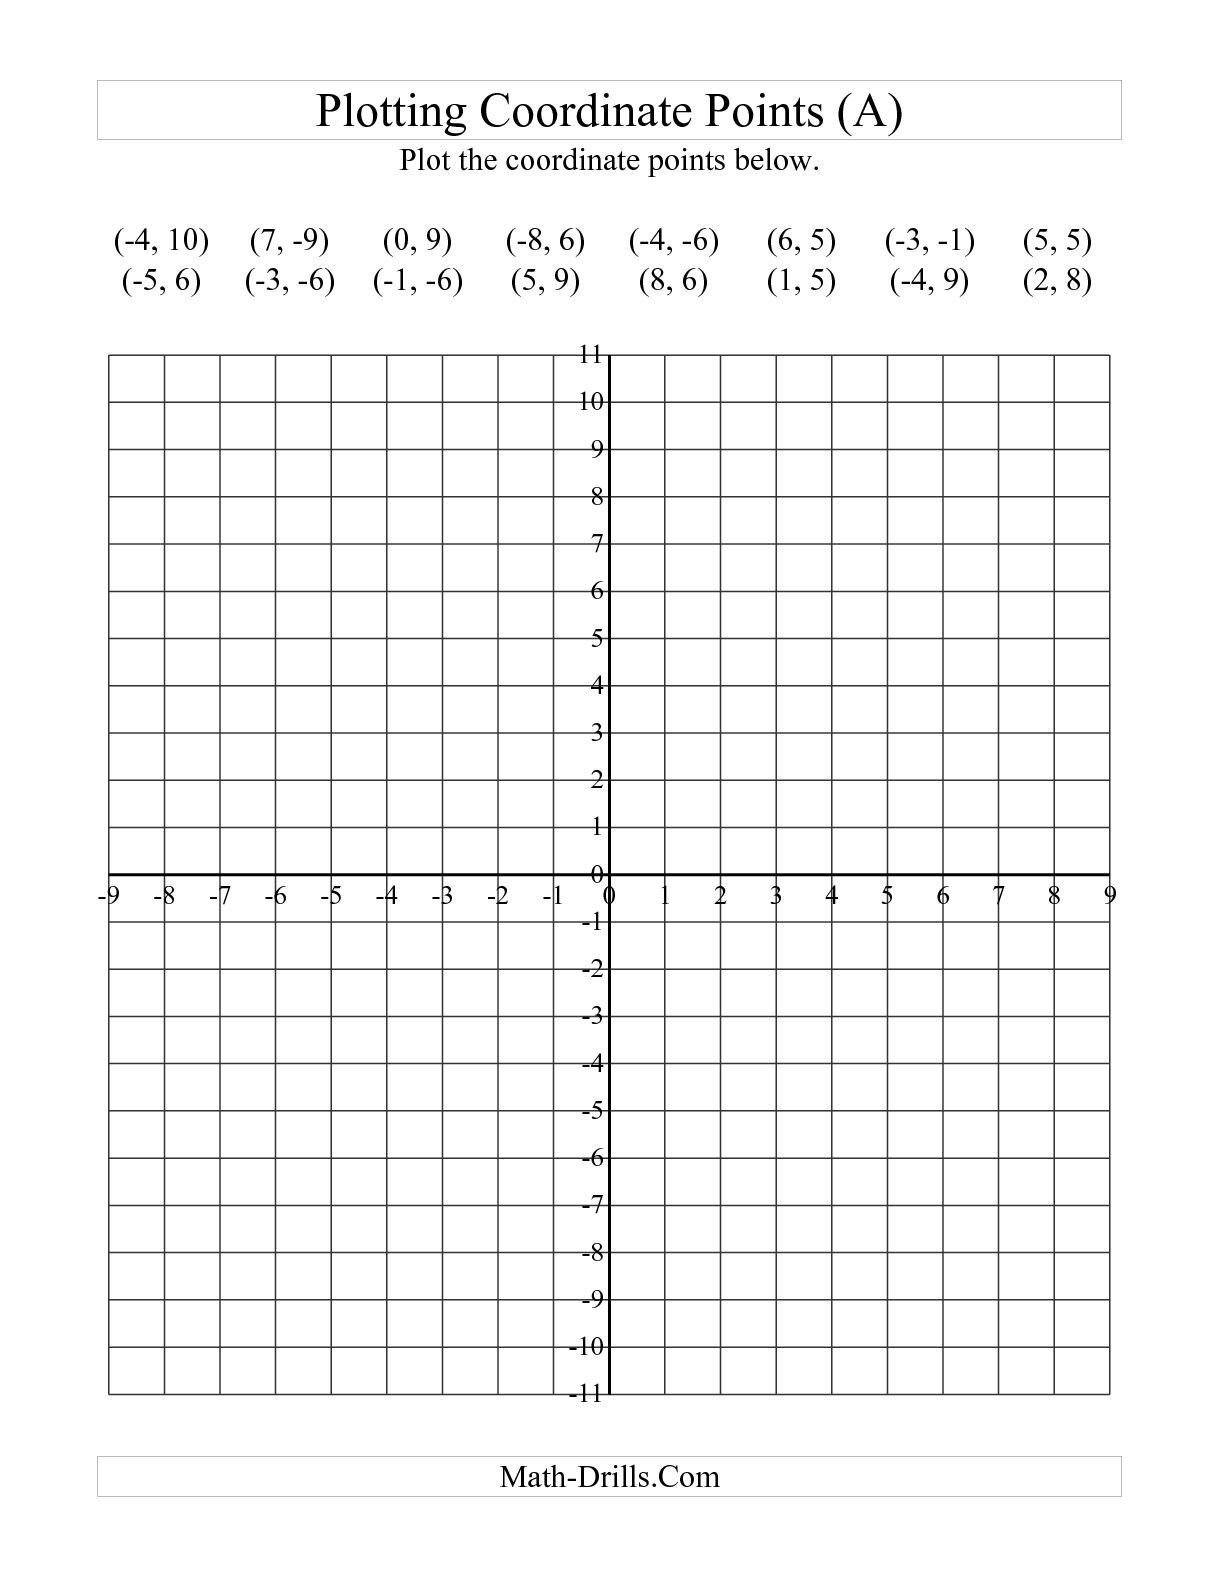 5th Grade Coordinate Grid Worksheets the Plotting Coordinate Points All Math Worksheet From the